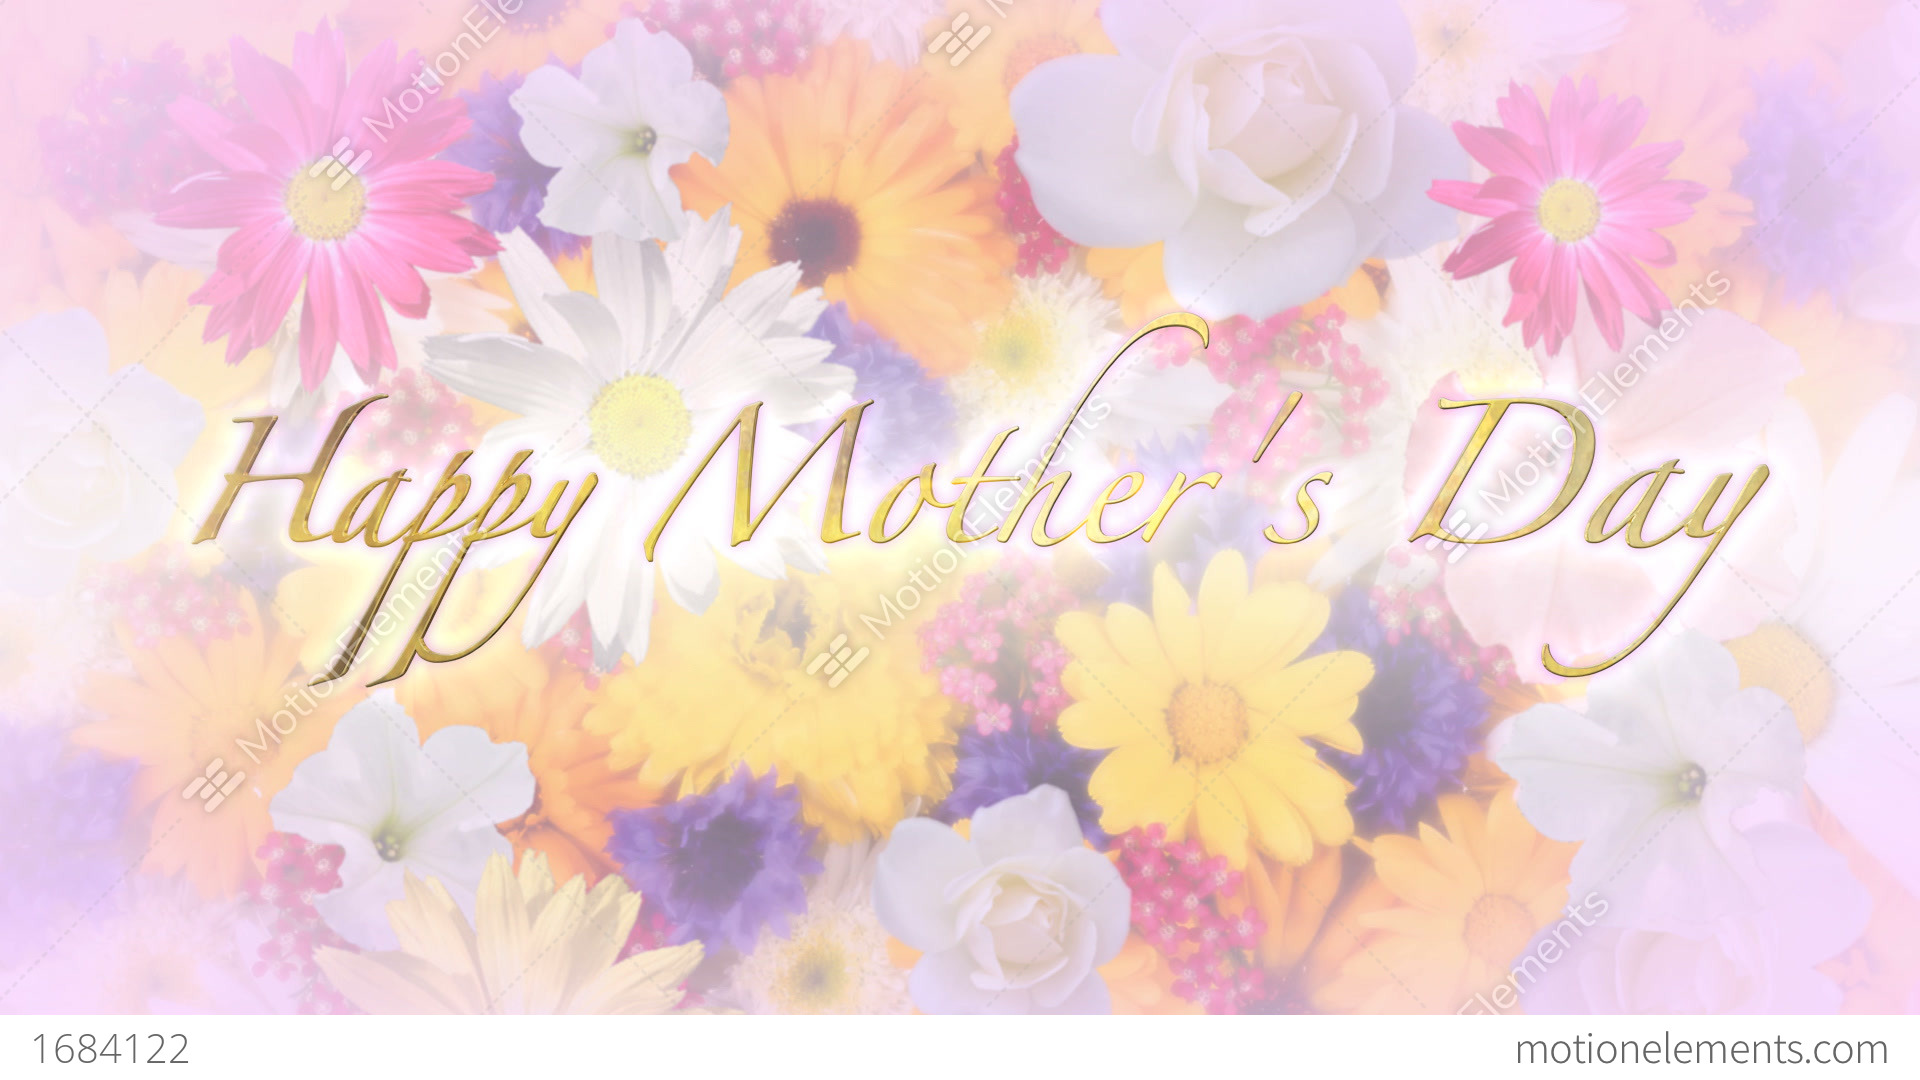 Happy Mothers Day Title And Background Stock Video Footage